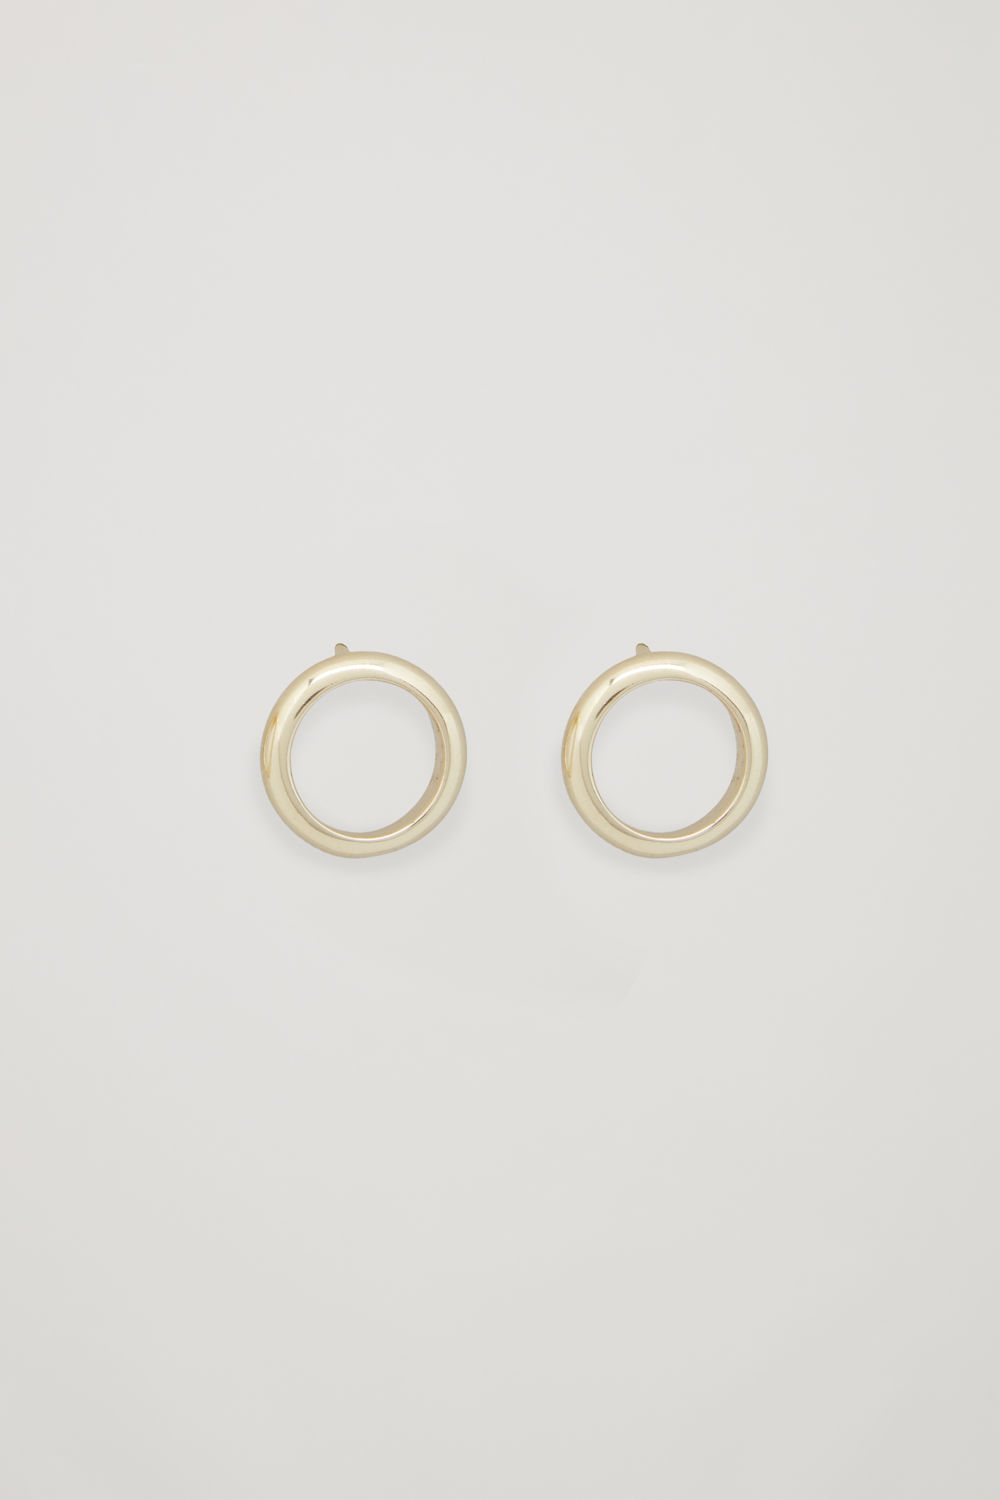 GOLD-PLATED STUD EARRINGS